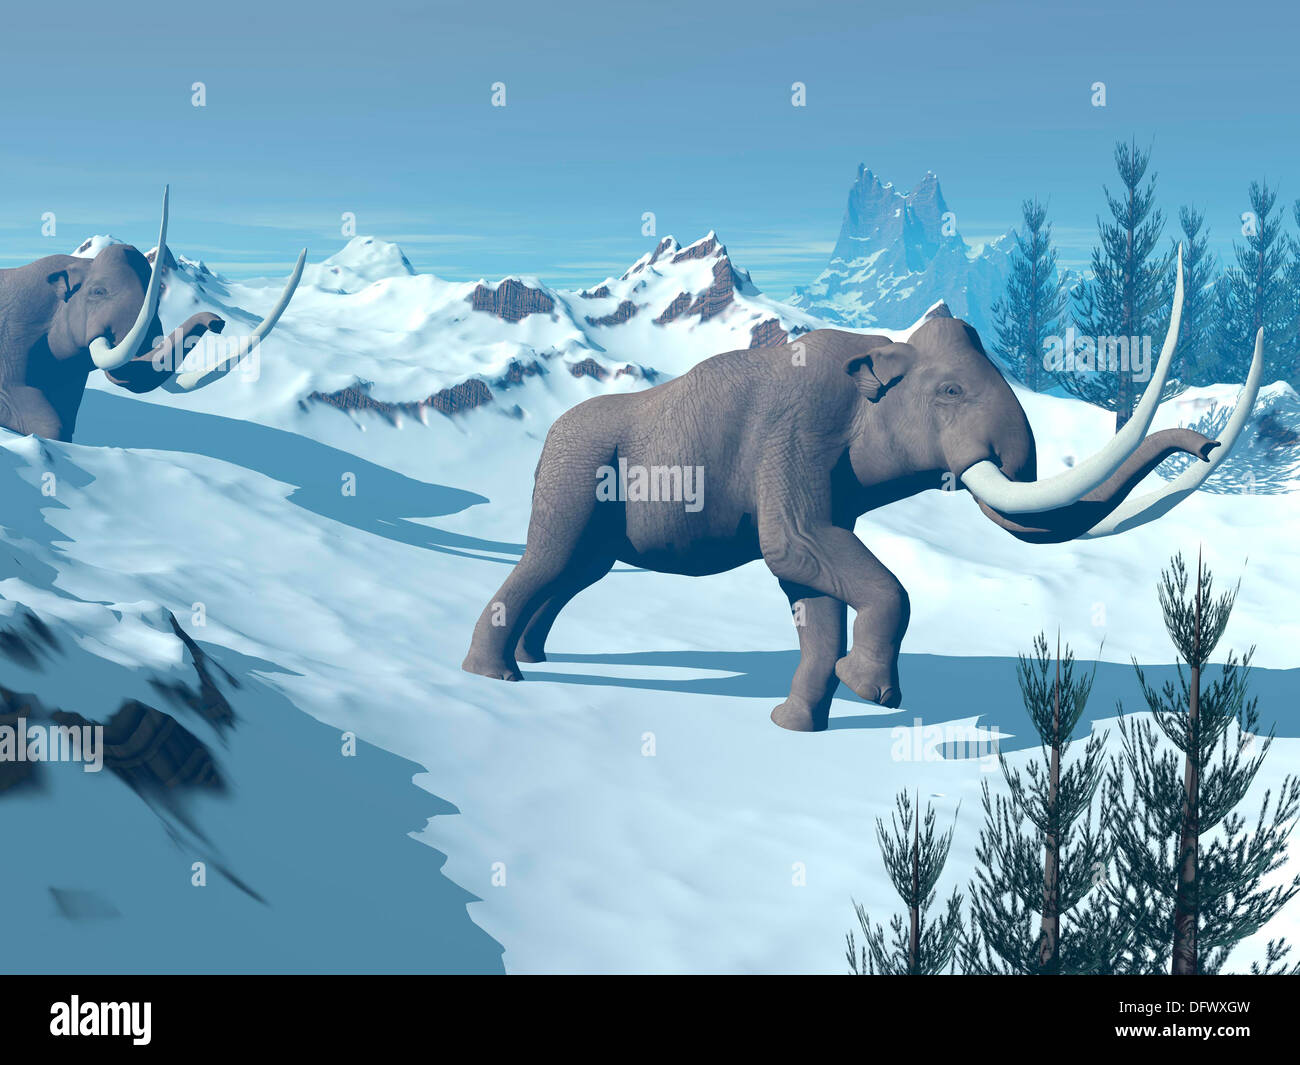 Two large mammoths walking slowly on the snowy mountain. - Stock Image